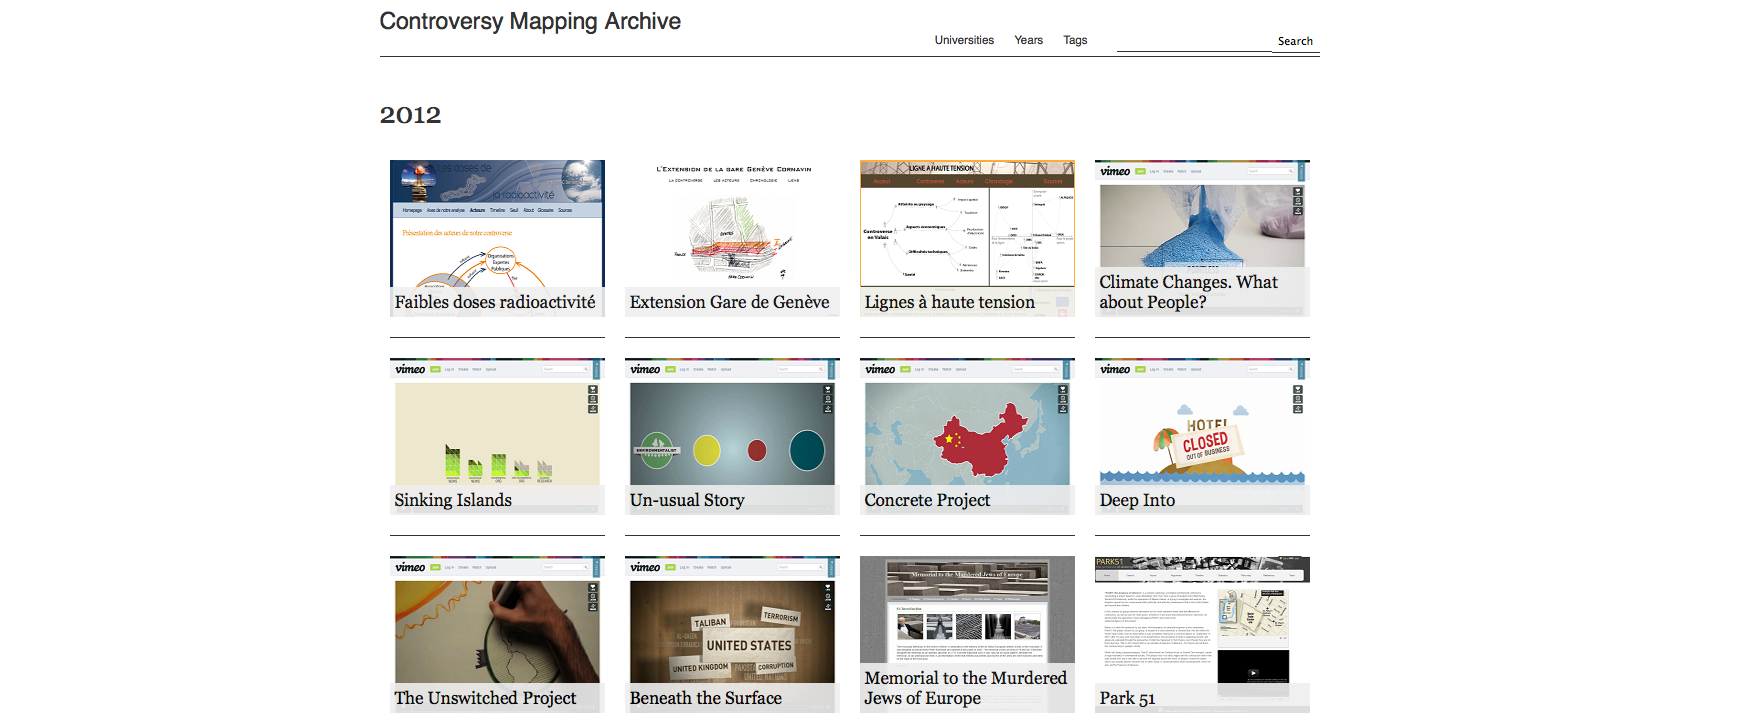 Controversy Mapping Archive